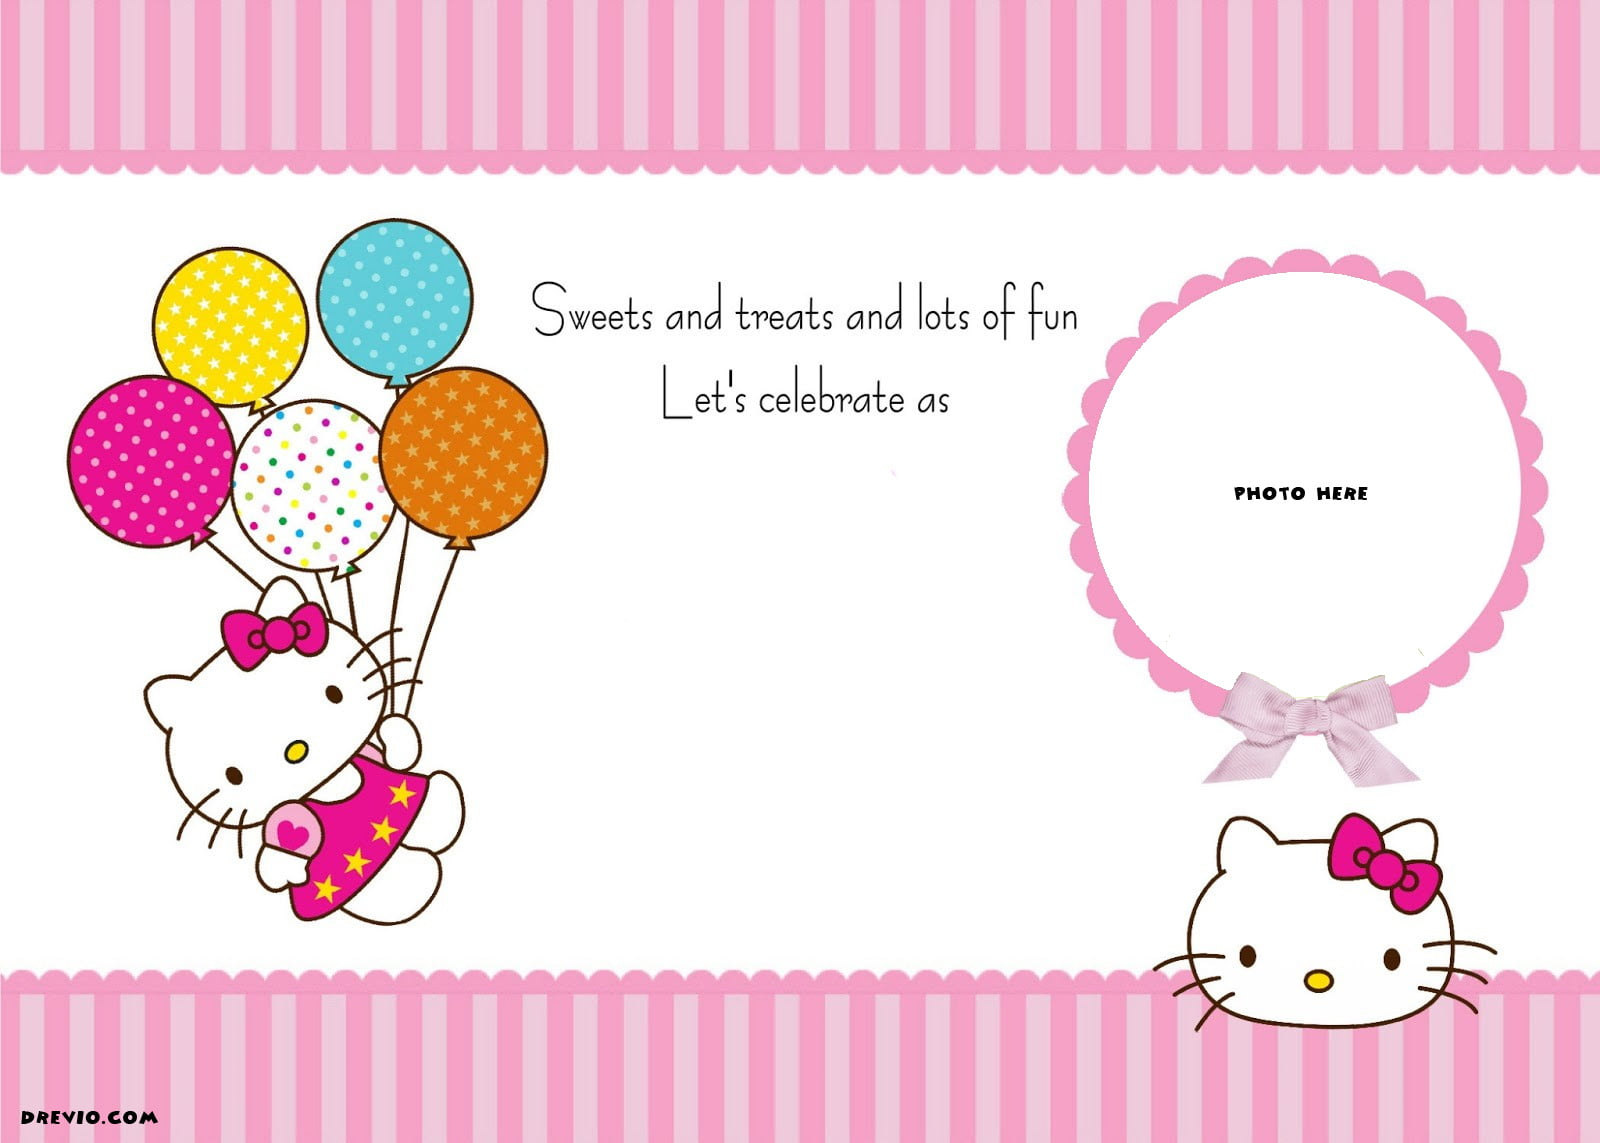 To Get An Invitation Unique Ideas Hello Kitty You Can Surf Through Online Media Create Birthday Invitations